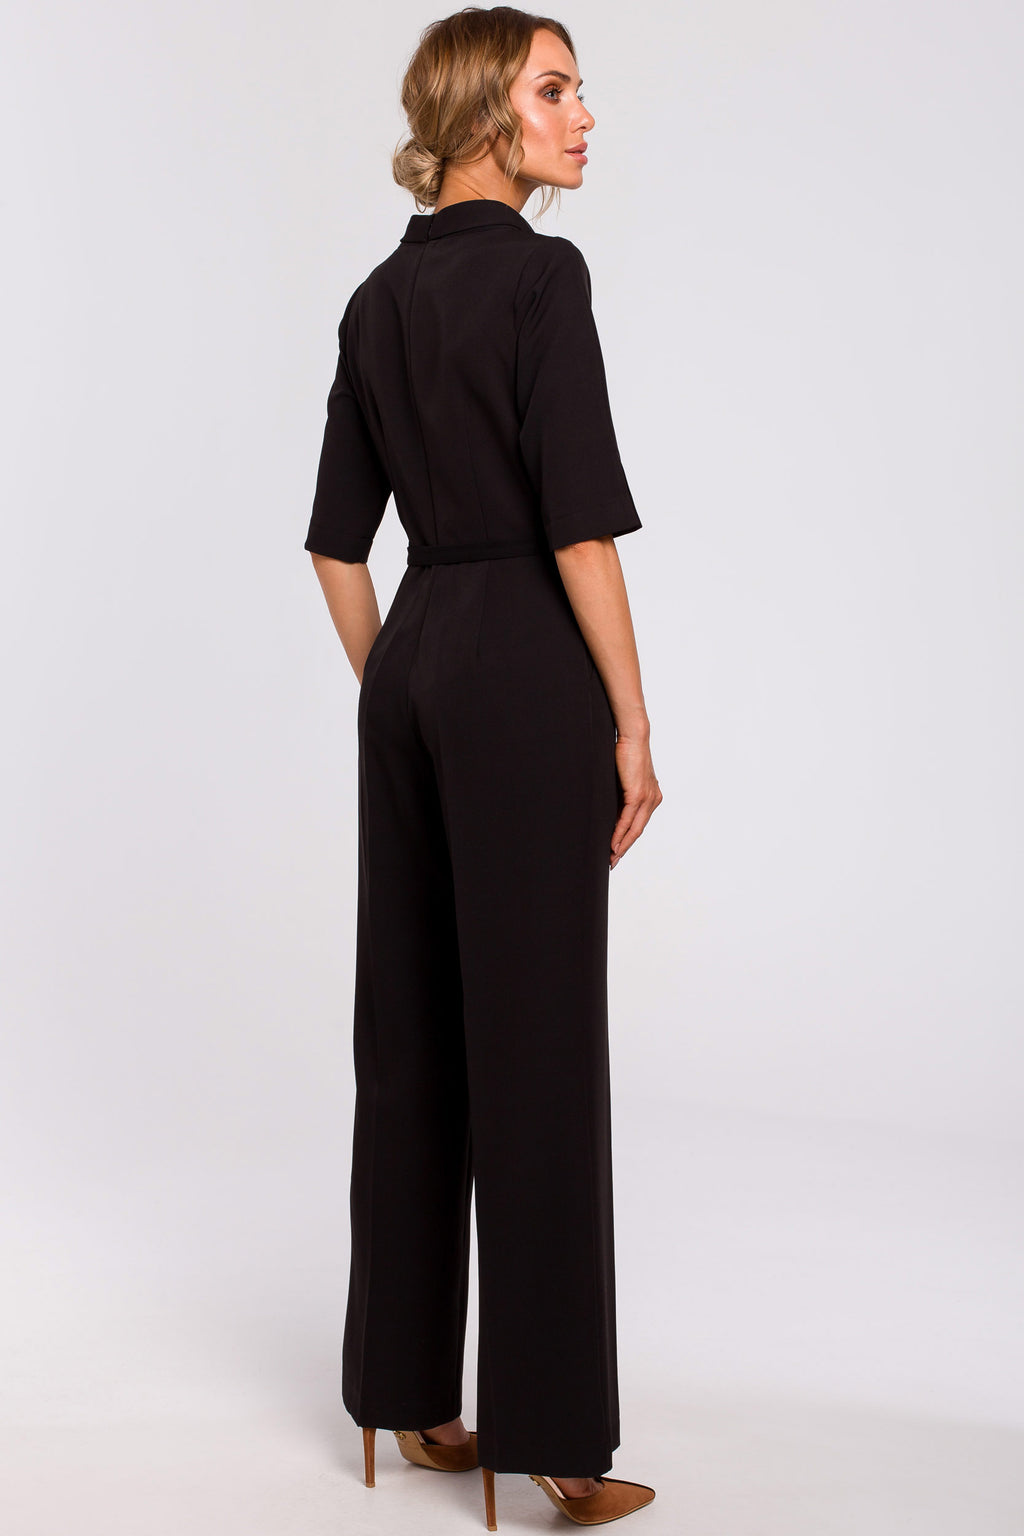 Black Stand Up Collar Jumpsuit With A Thin Belt - So Chic Boutique